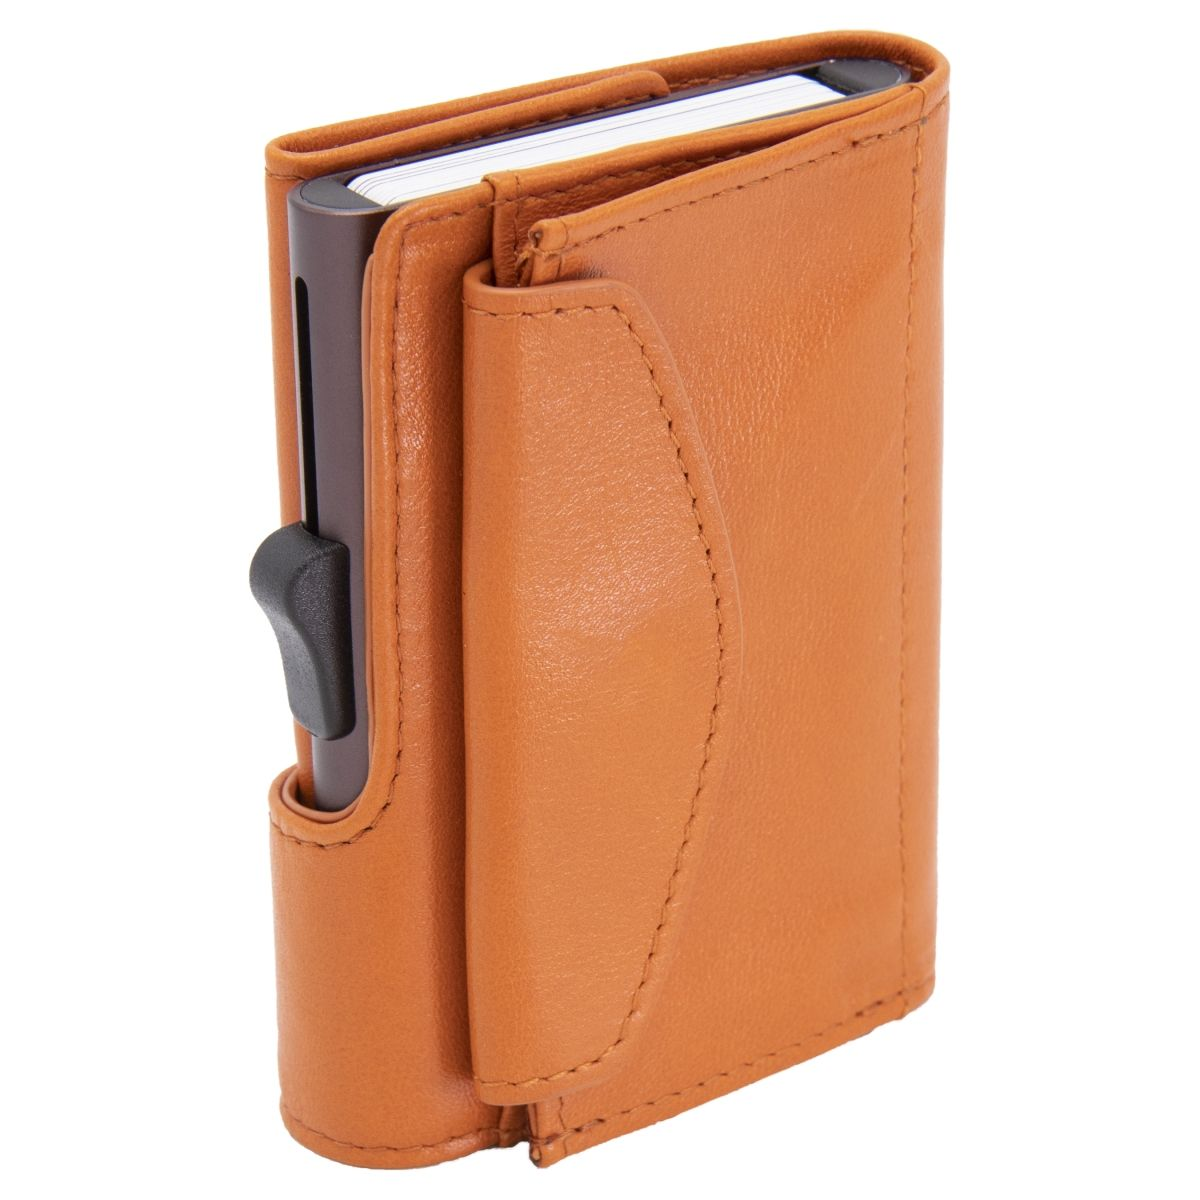 XL Aluminum Wallet with Genuine Leather and Coins Pocket - Arancio